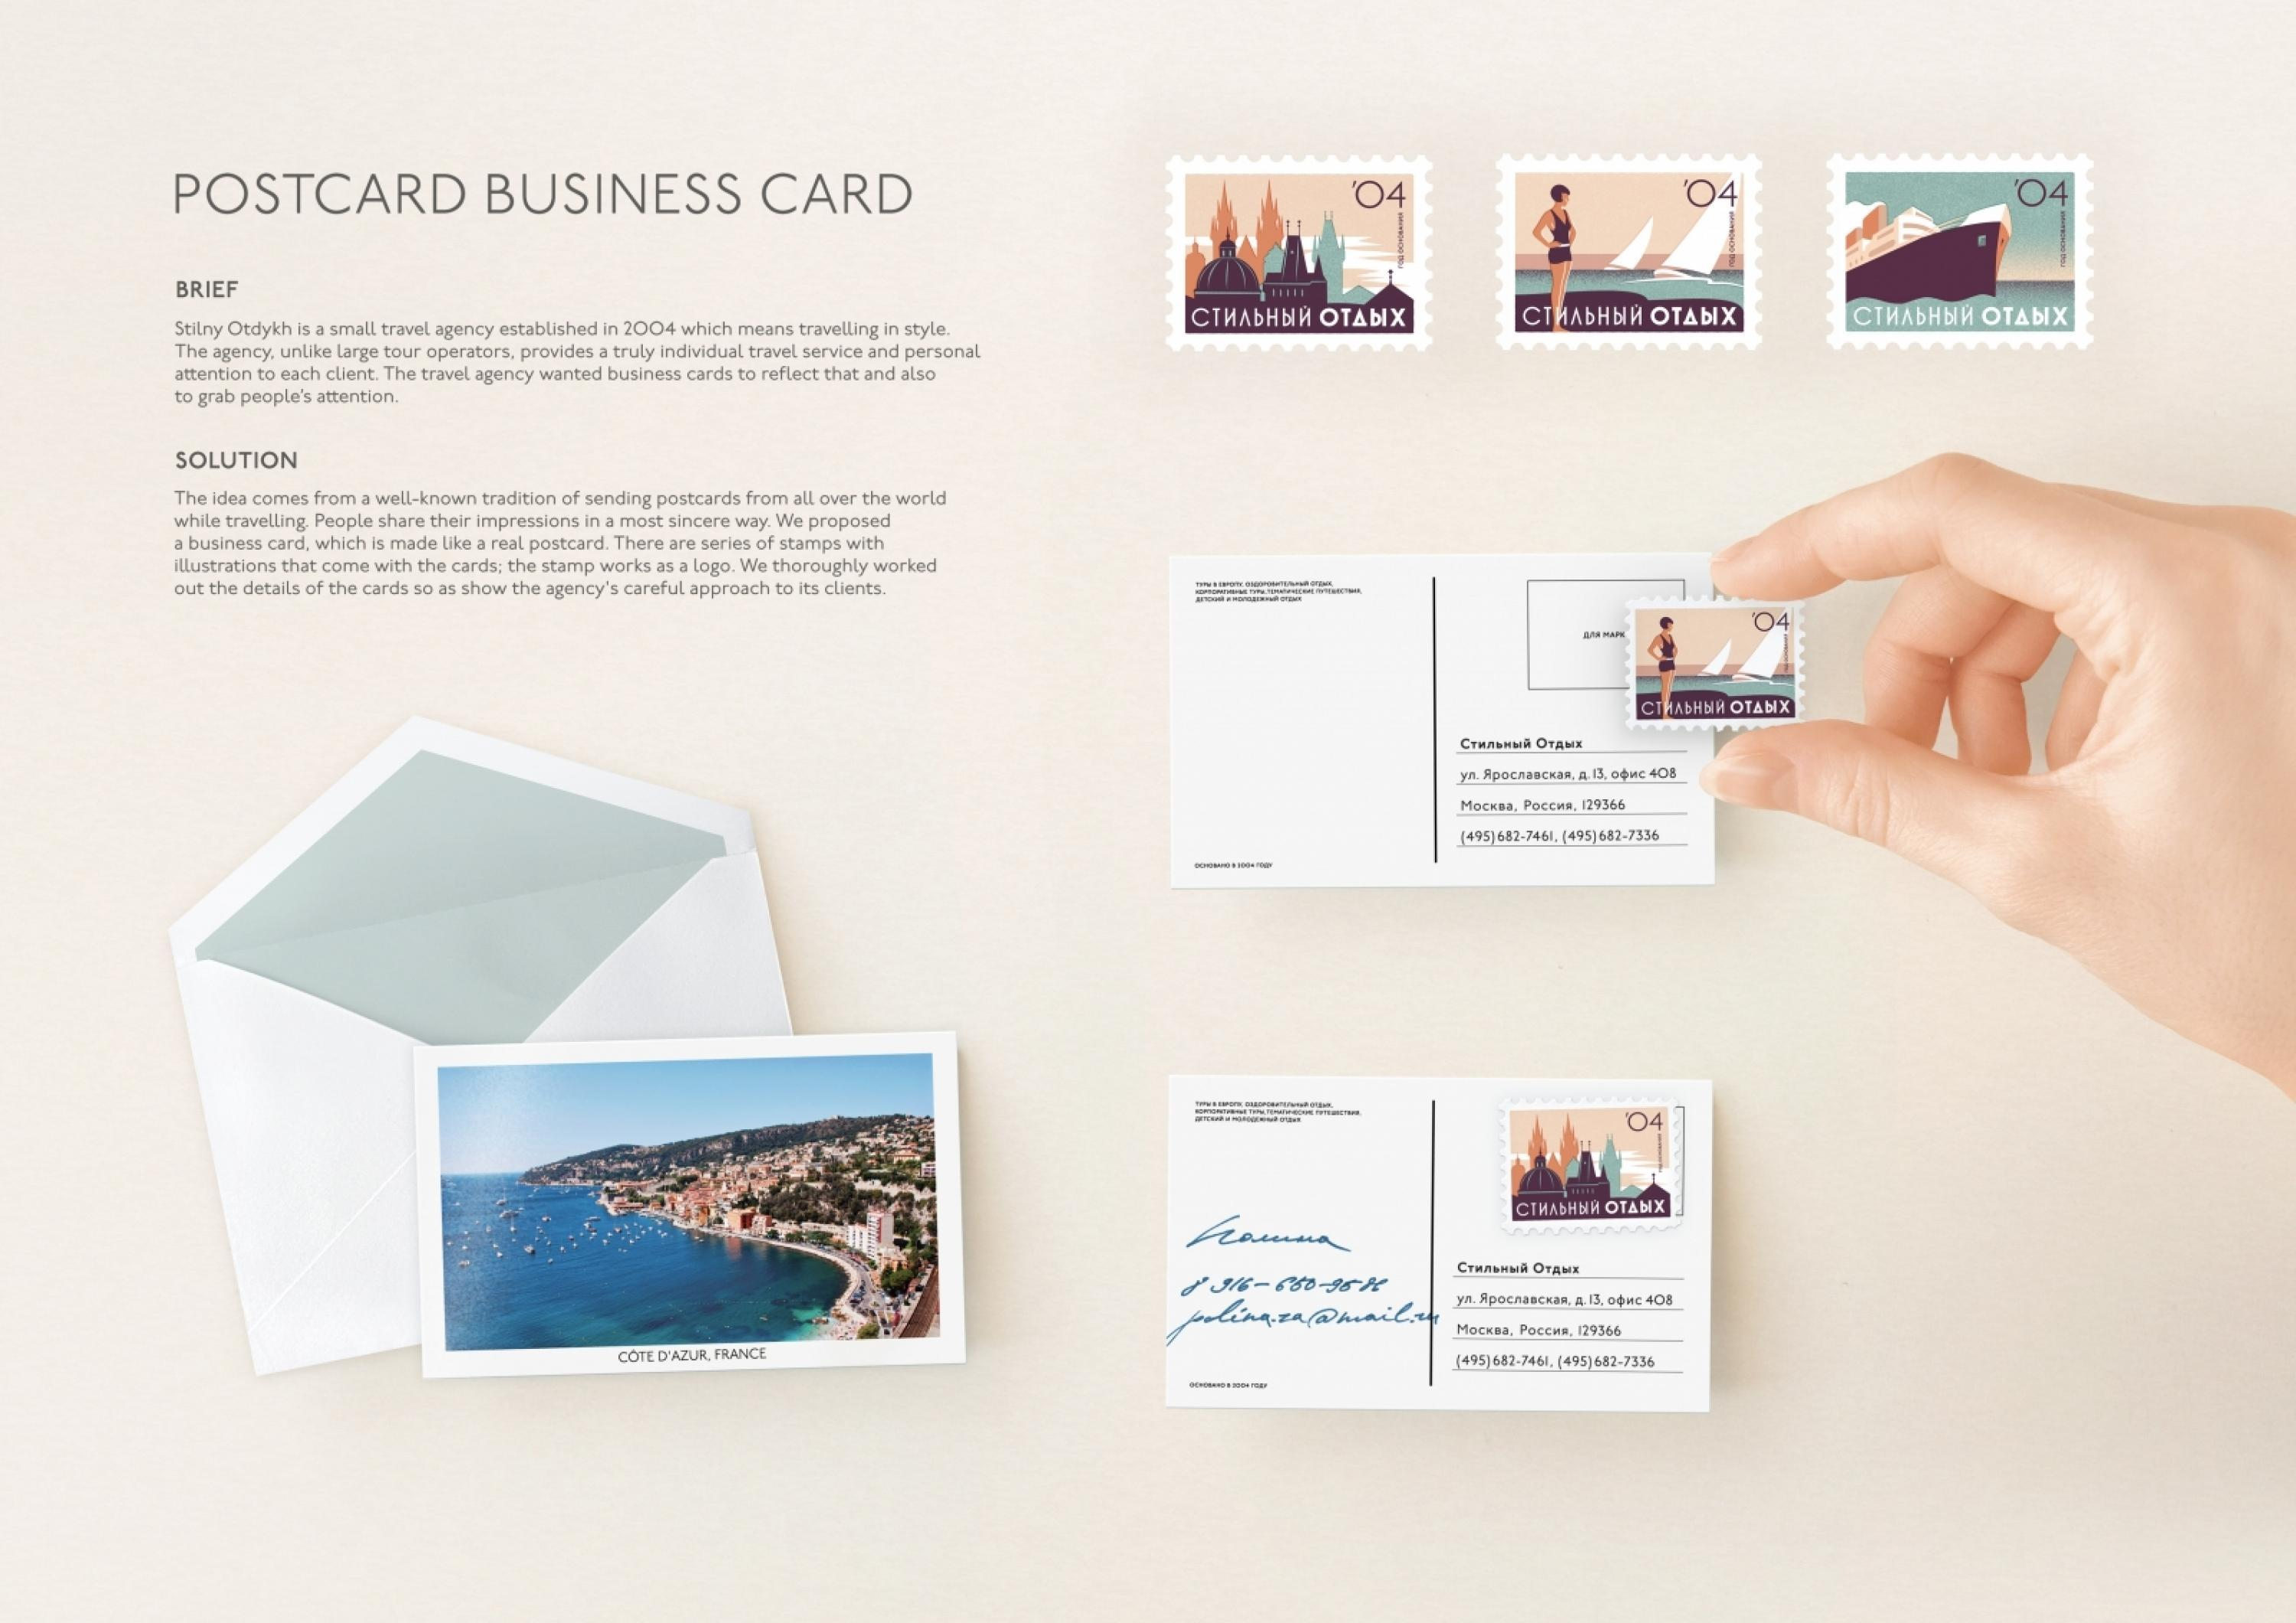 Stilny Otdykh Travel Agency: Postcard Business Card - Adeevee